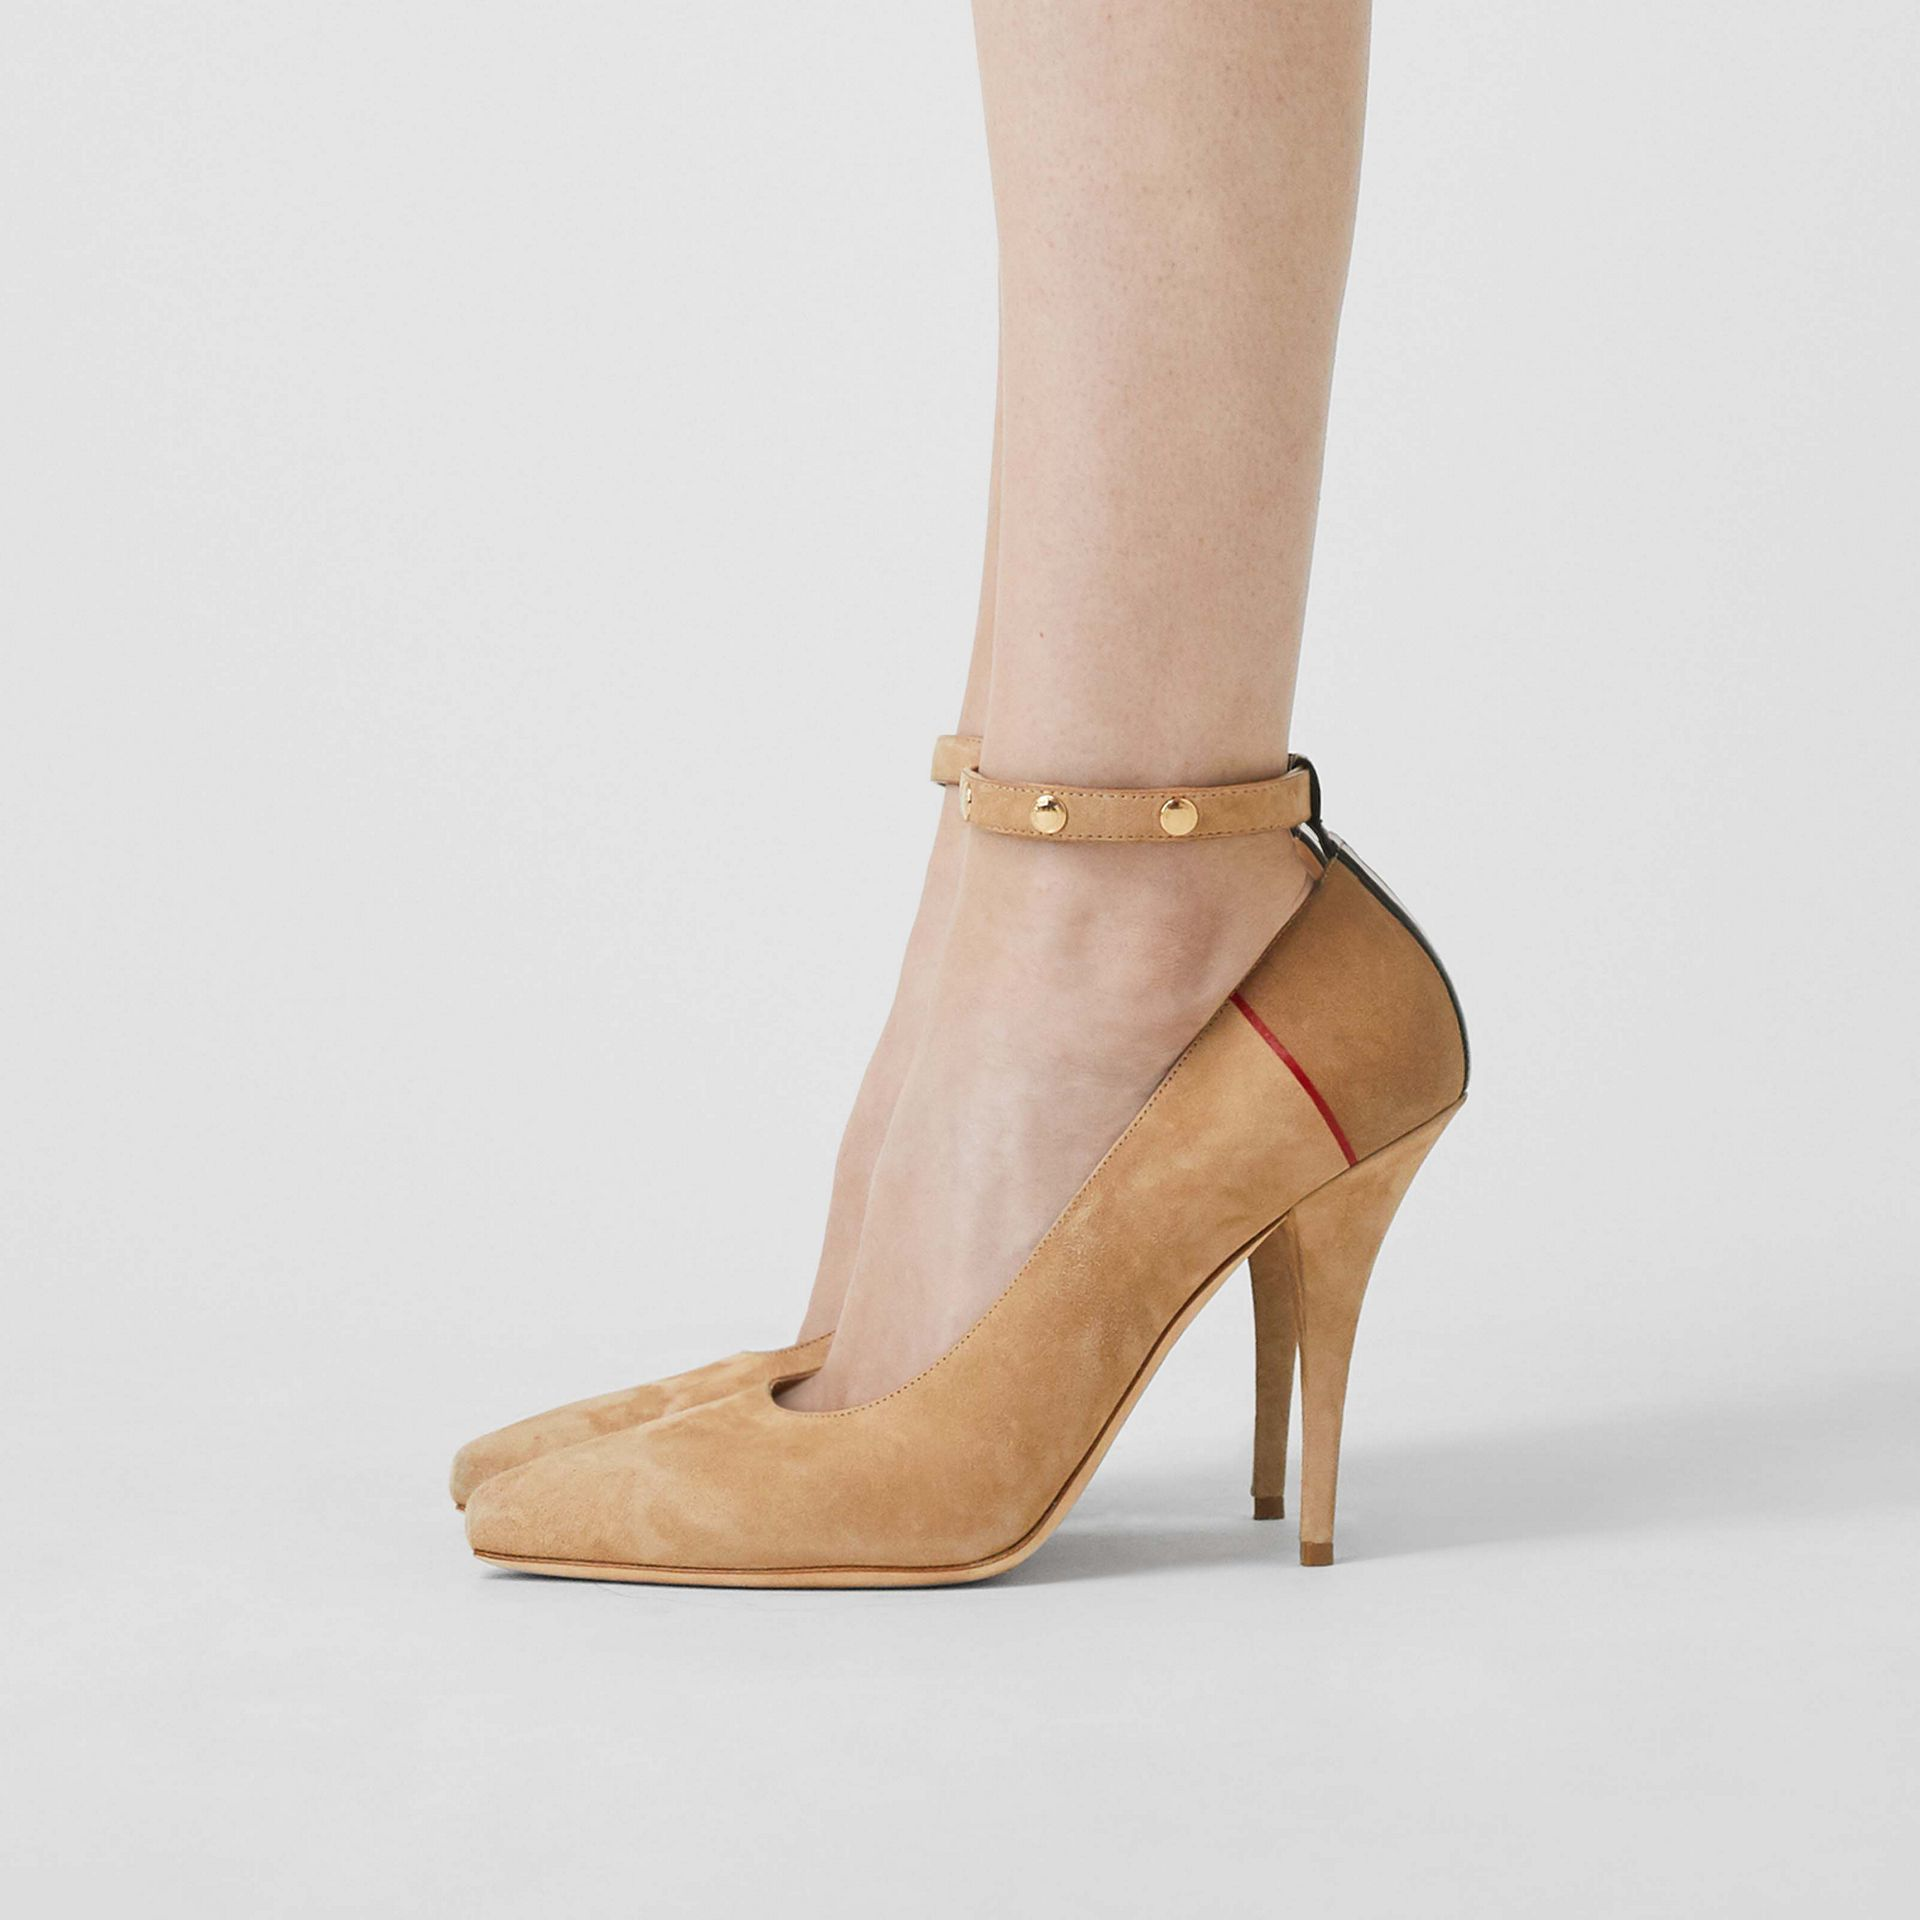 Triple Stud Stripe Detail Suede Point-toe Pumps in Tawny - Women | Burberry Canada - gallery image 2